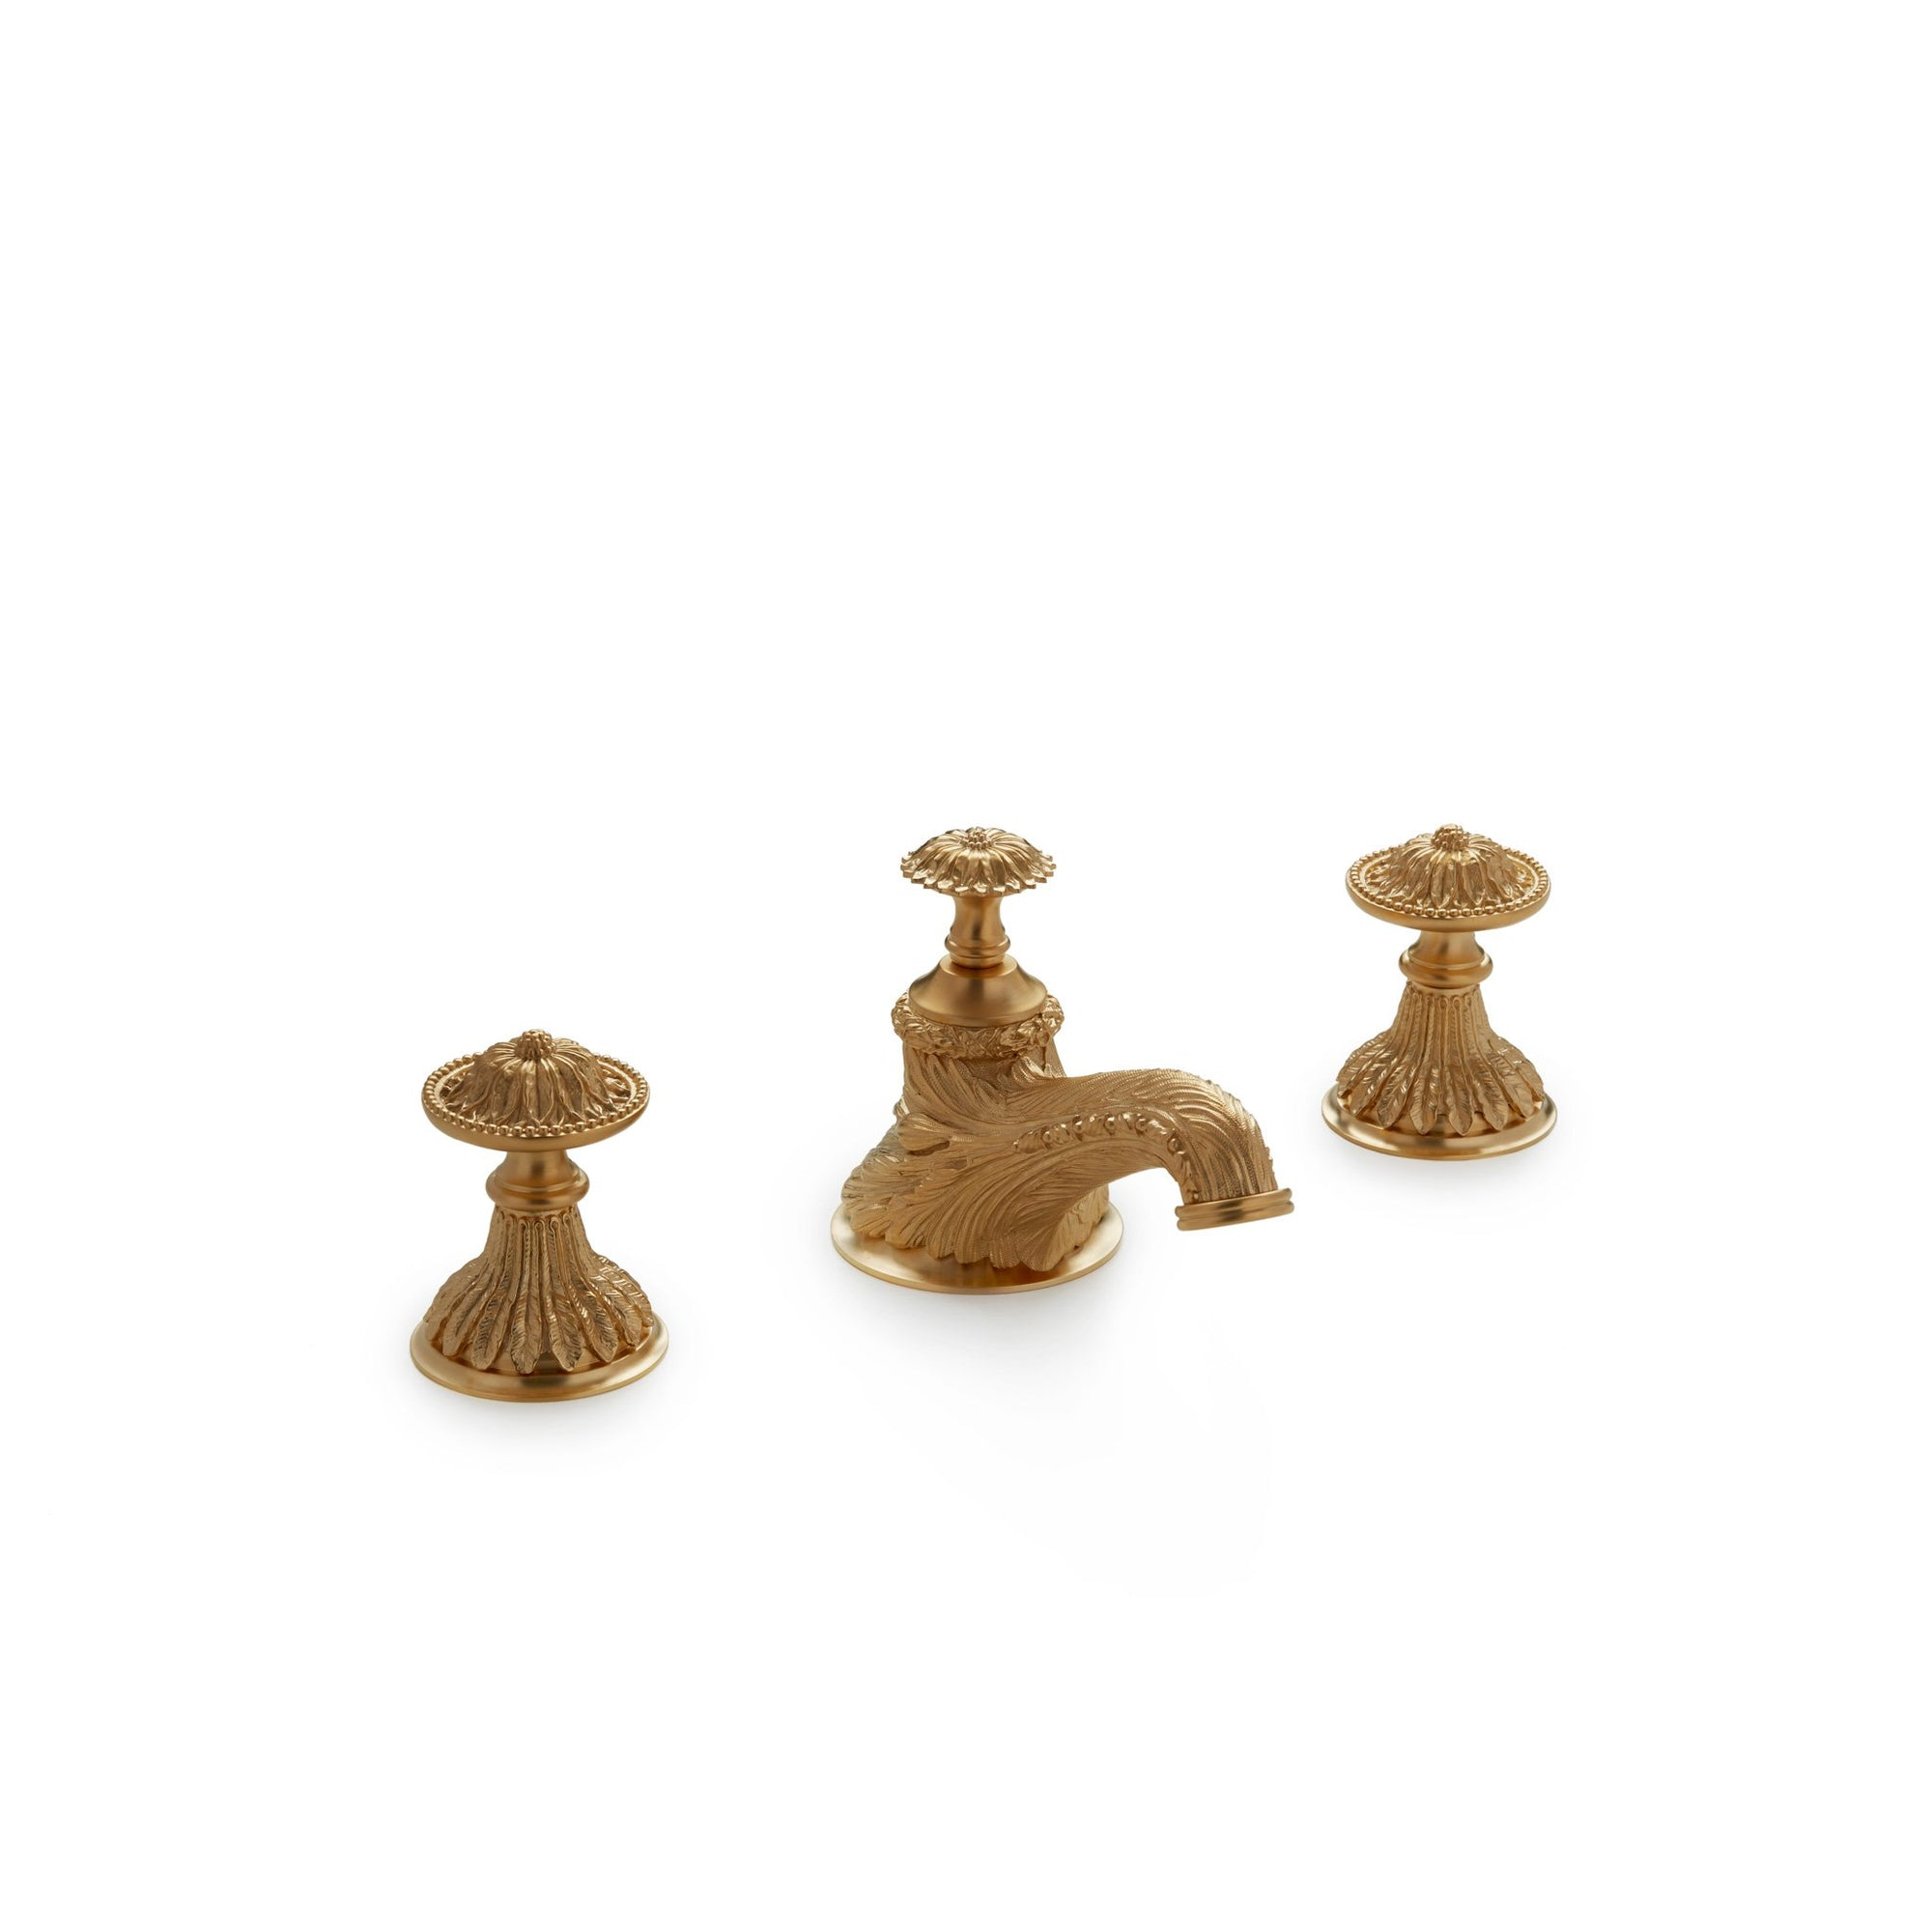 0918BSN-GP Sherle Wagner International Acanthus Knob Faucet Set in Gold Plate metal finish